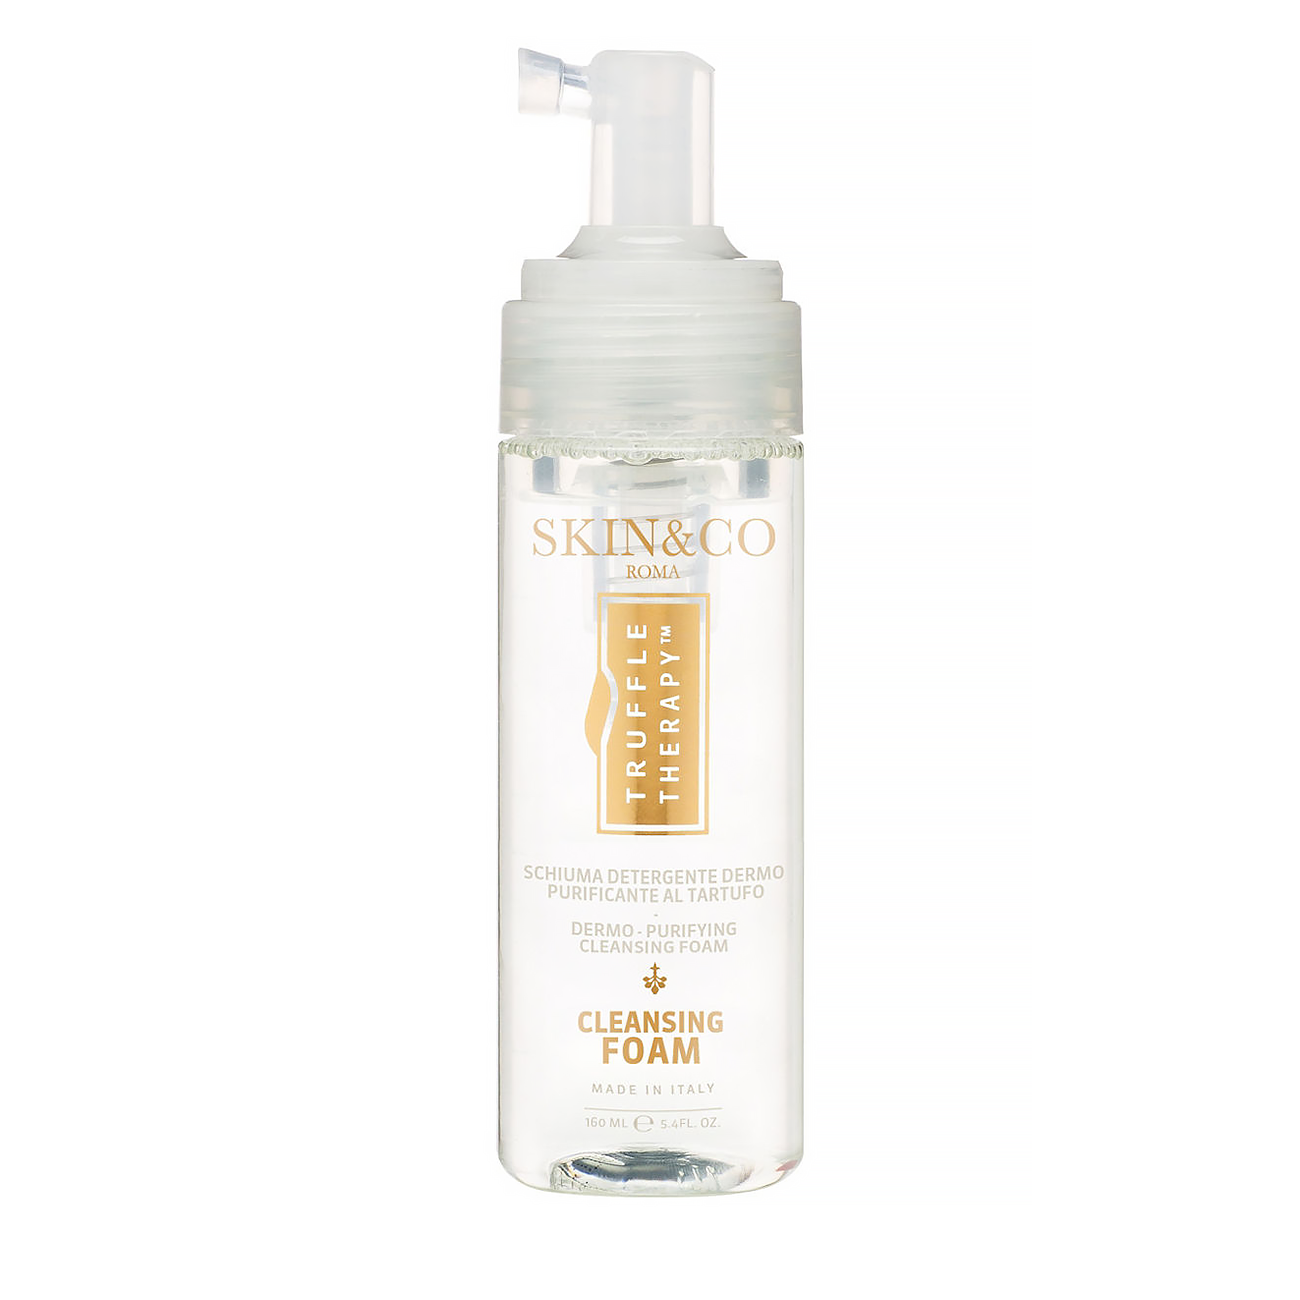 TRUFFLE THERAPY CLEANSING FOAM 160ml